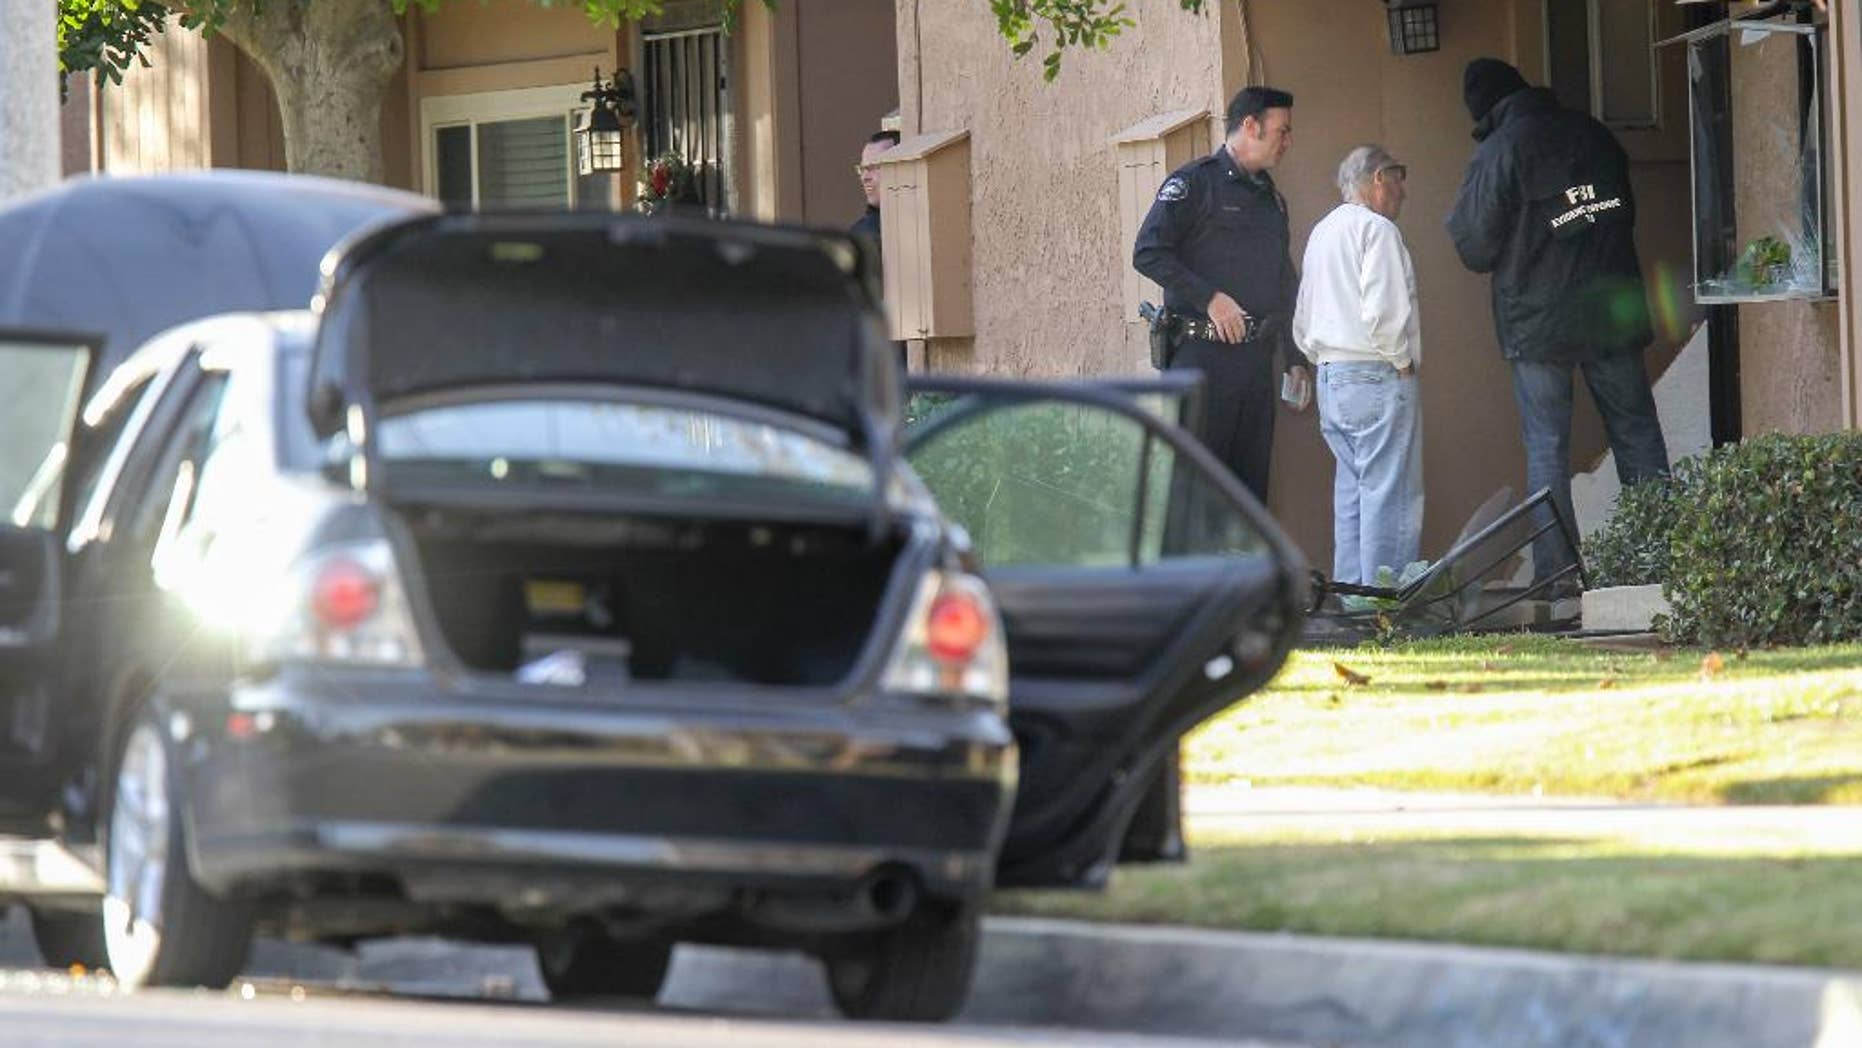 FBI agents interview a man, center, outside a home in connection to the shootings in San Bernardino, Thursday, Dec. 3, 2015, in Redlands, Calif. A heavily armed man and woman opened fire Wednesday on a holiday banquet for his co-workers, killing multiple people and seriously wounding others in a precision assault, authorities said. Hours later, they died in a shootout with police. (AP Photo/Ringo H.W. Chiu)